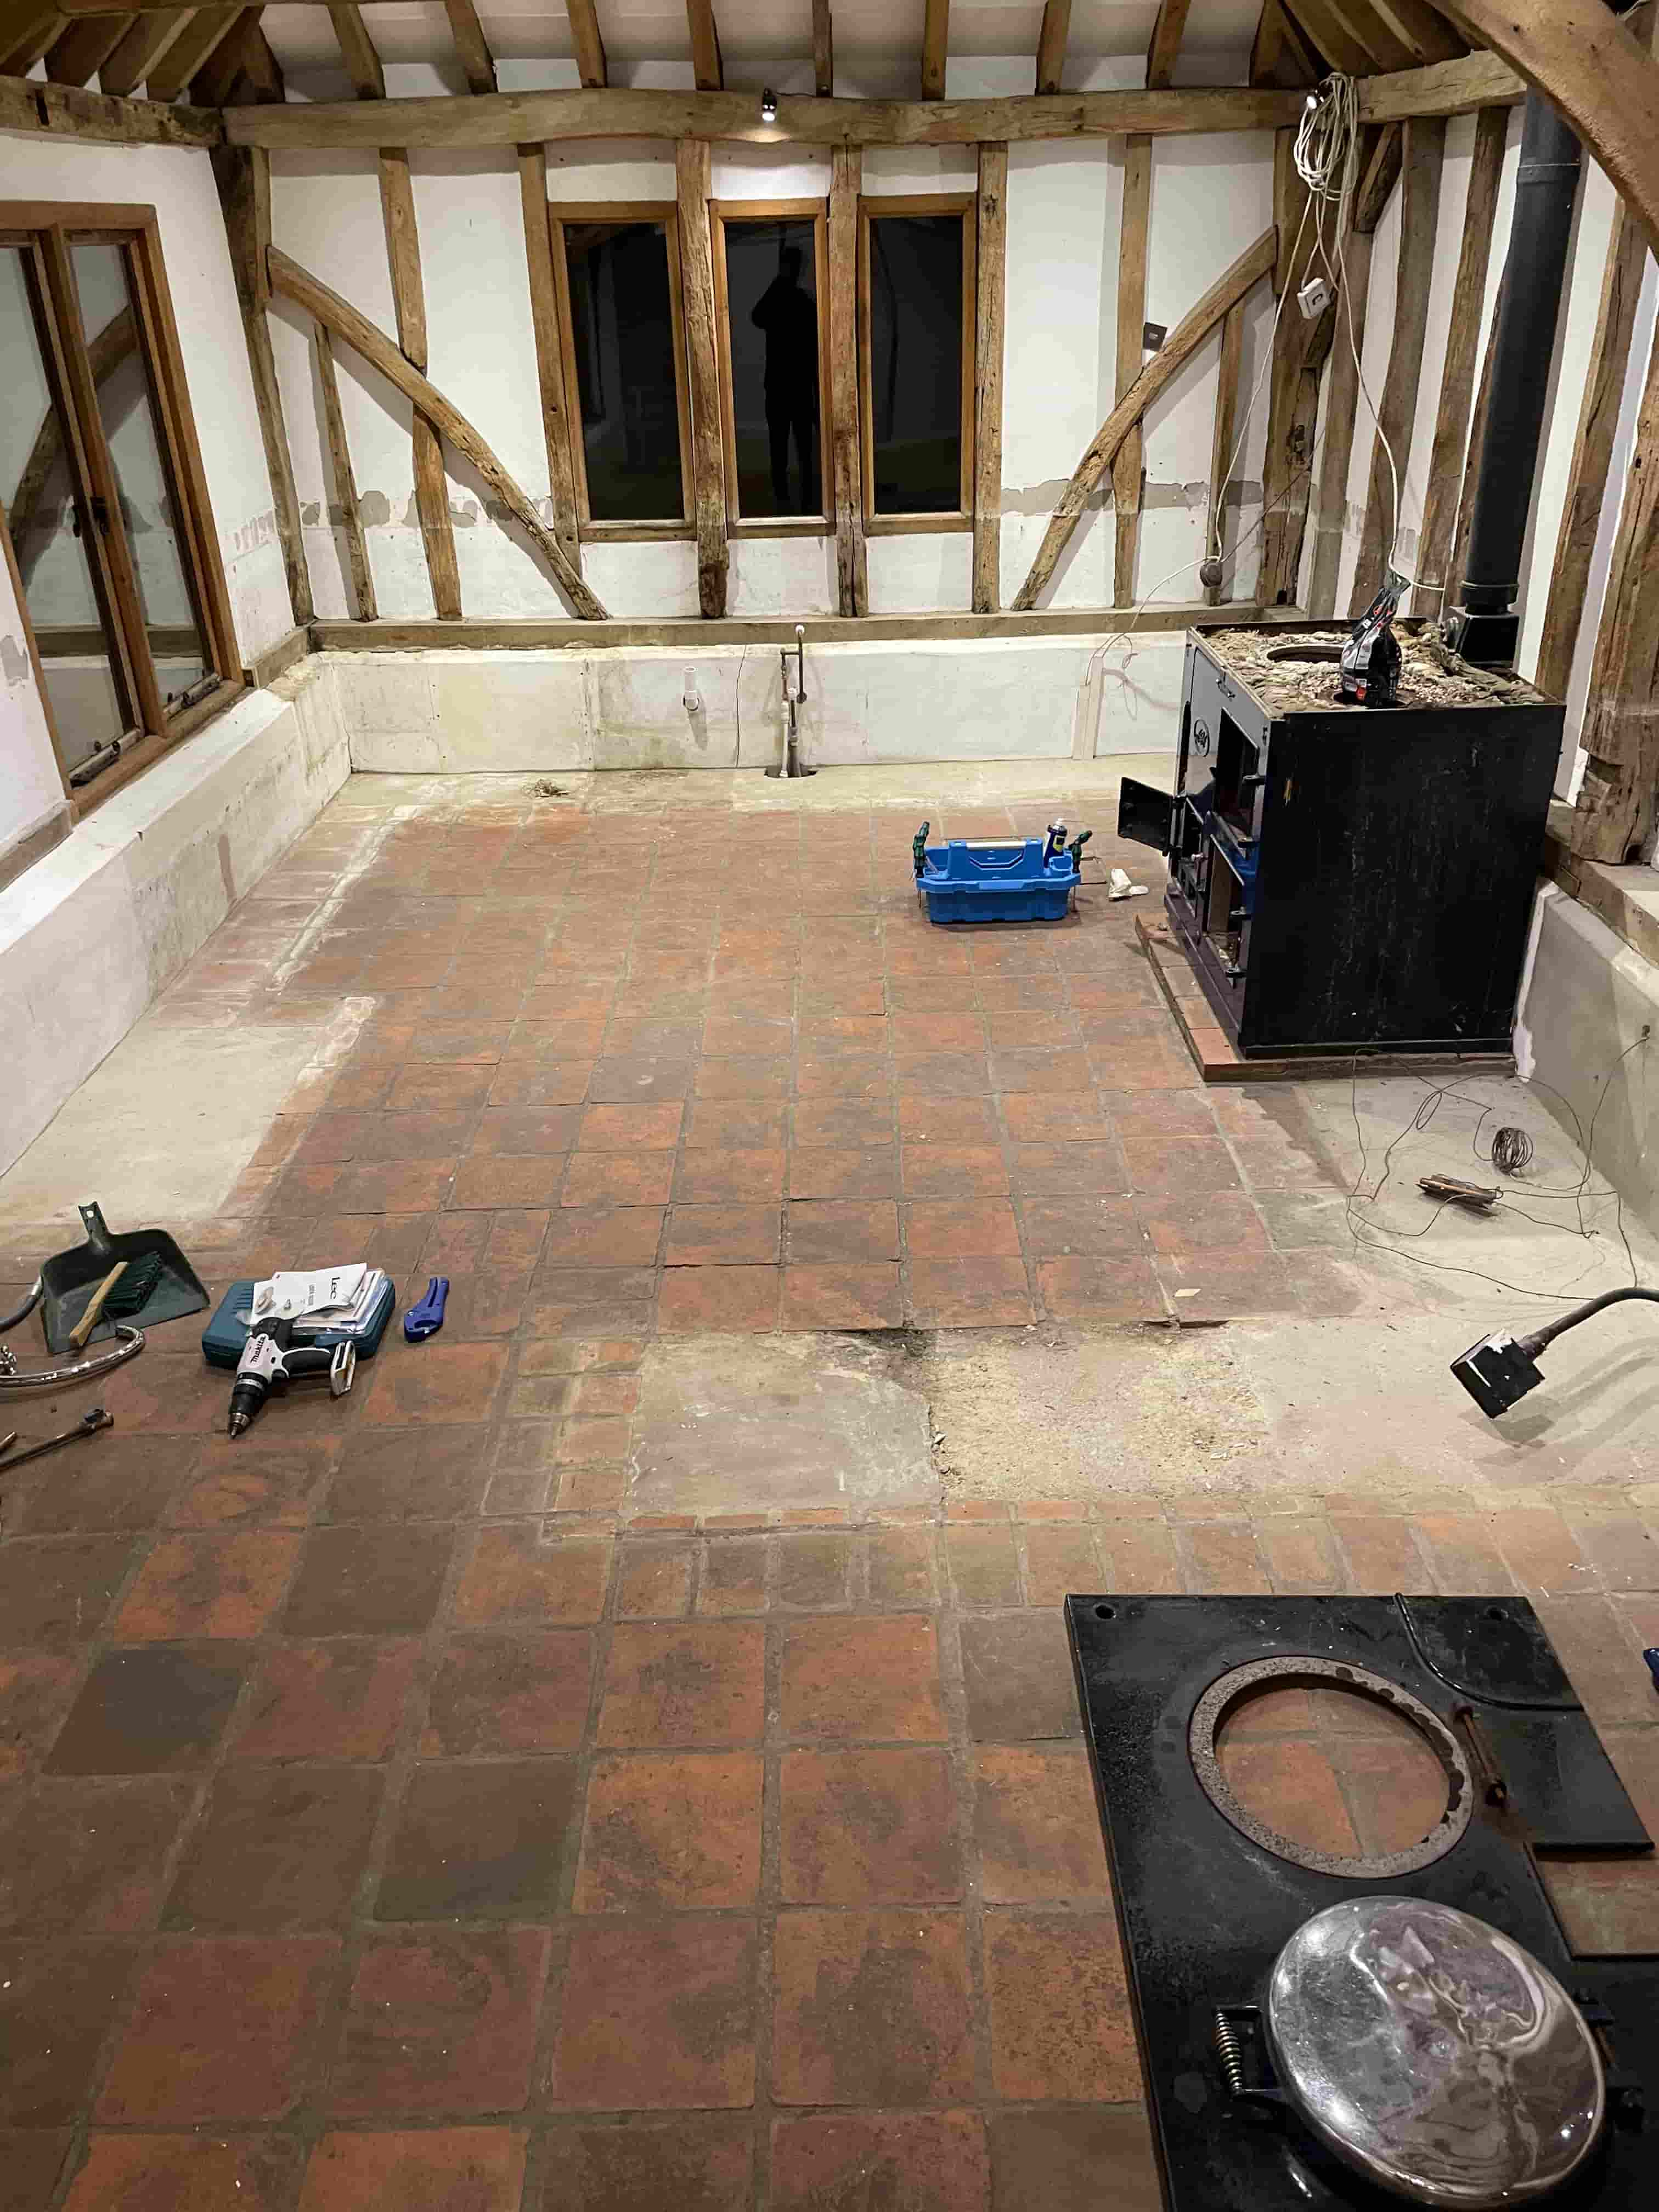 Terracotta and Quarry Tiled Floor Before Renovation at Old Barn Conversion Hawkinge